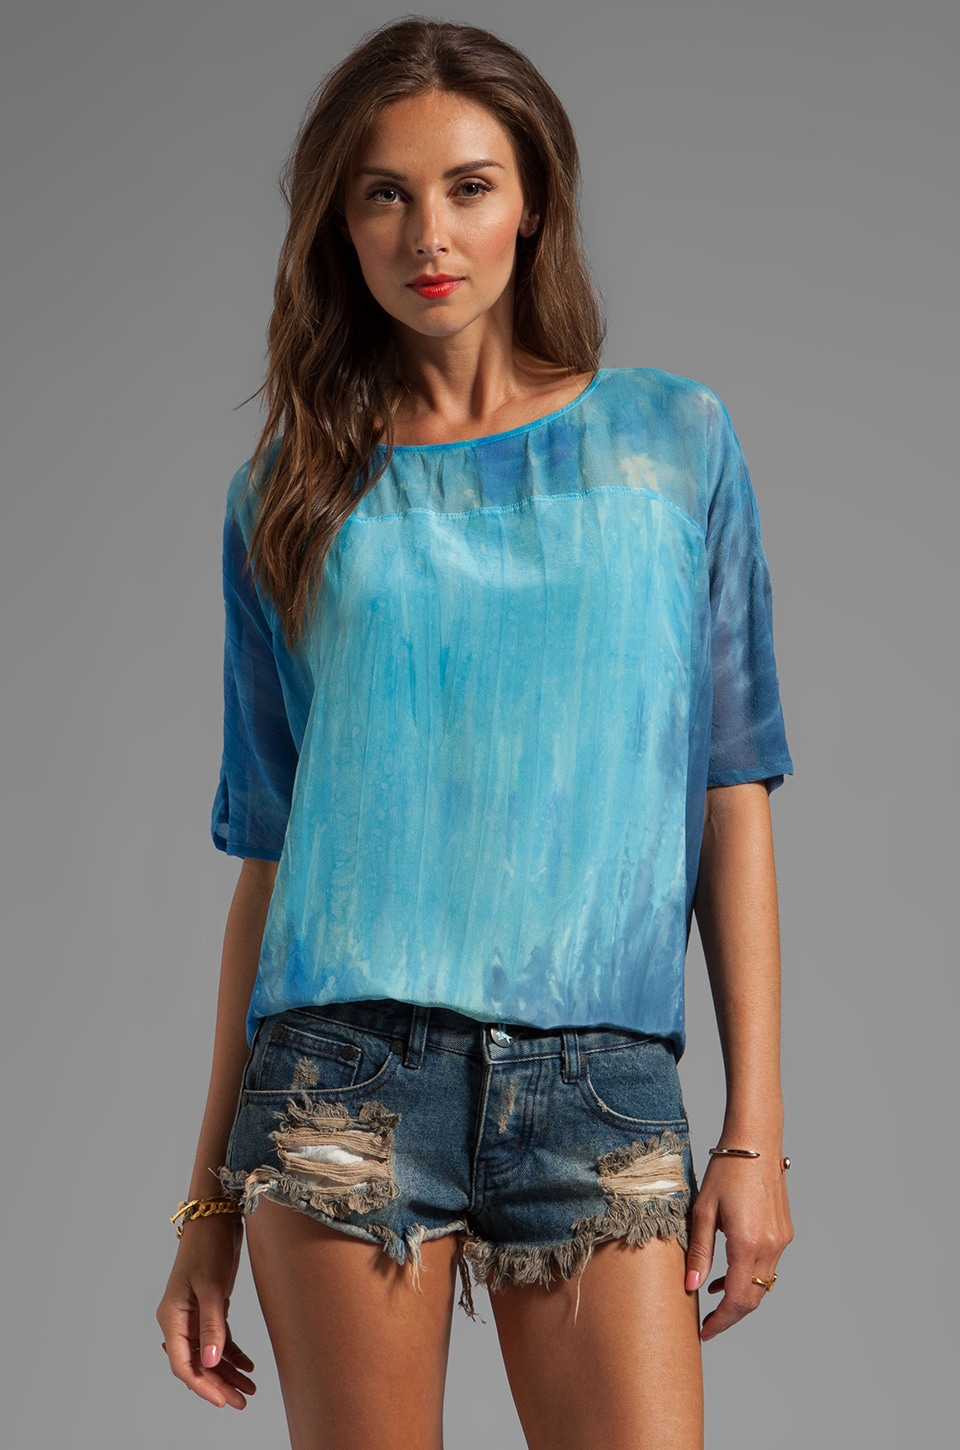 Gypsy 05 Clavi Mixed Oversized Square Top in Pacific Surf